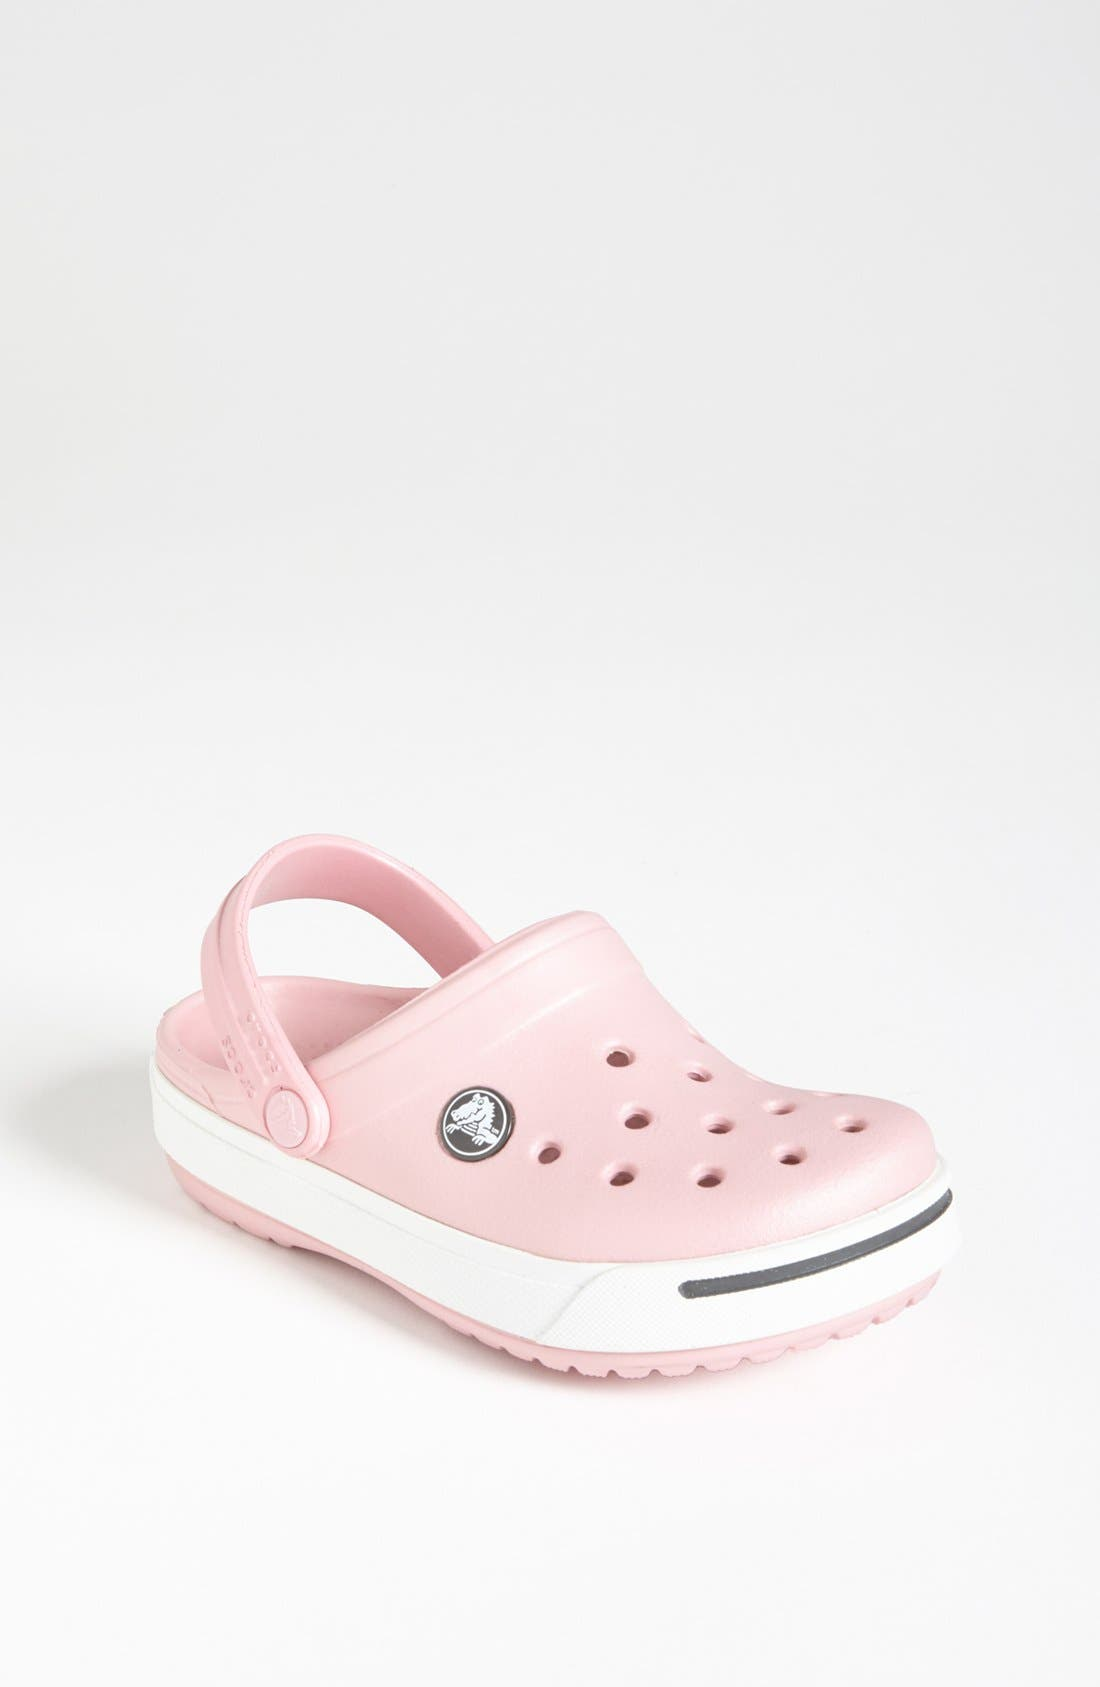 Main Image - CROCS™ 'Crocband II' Clog (Walker, Toddler & Little Kid)